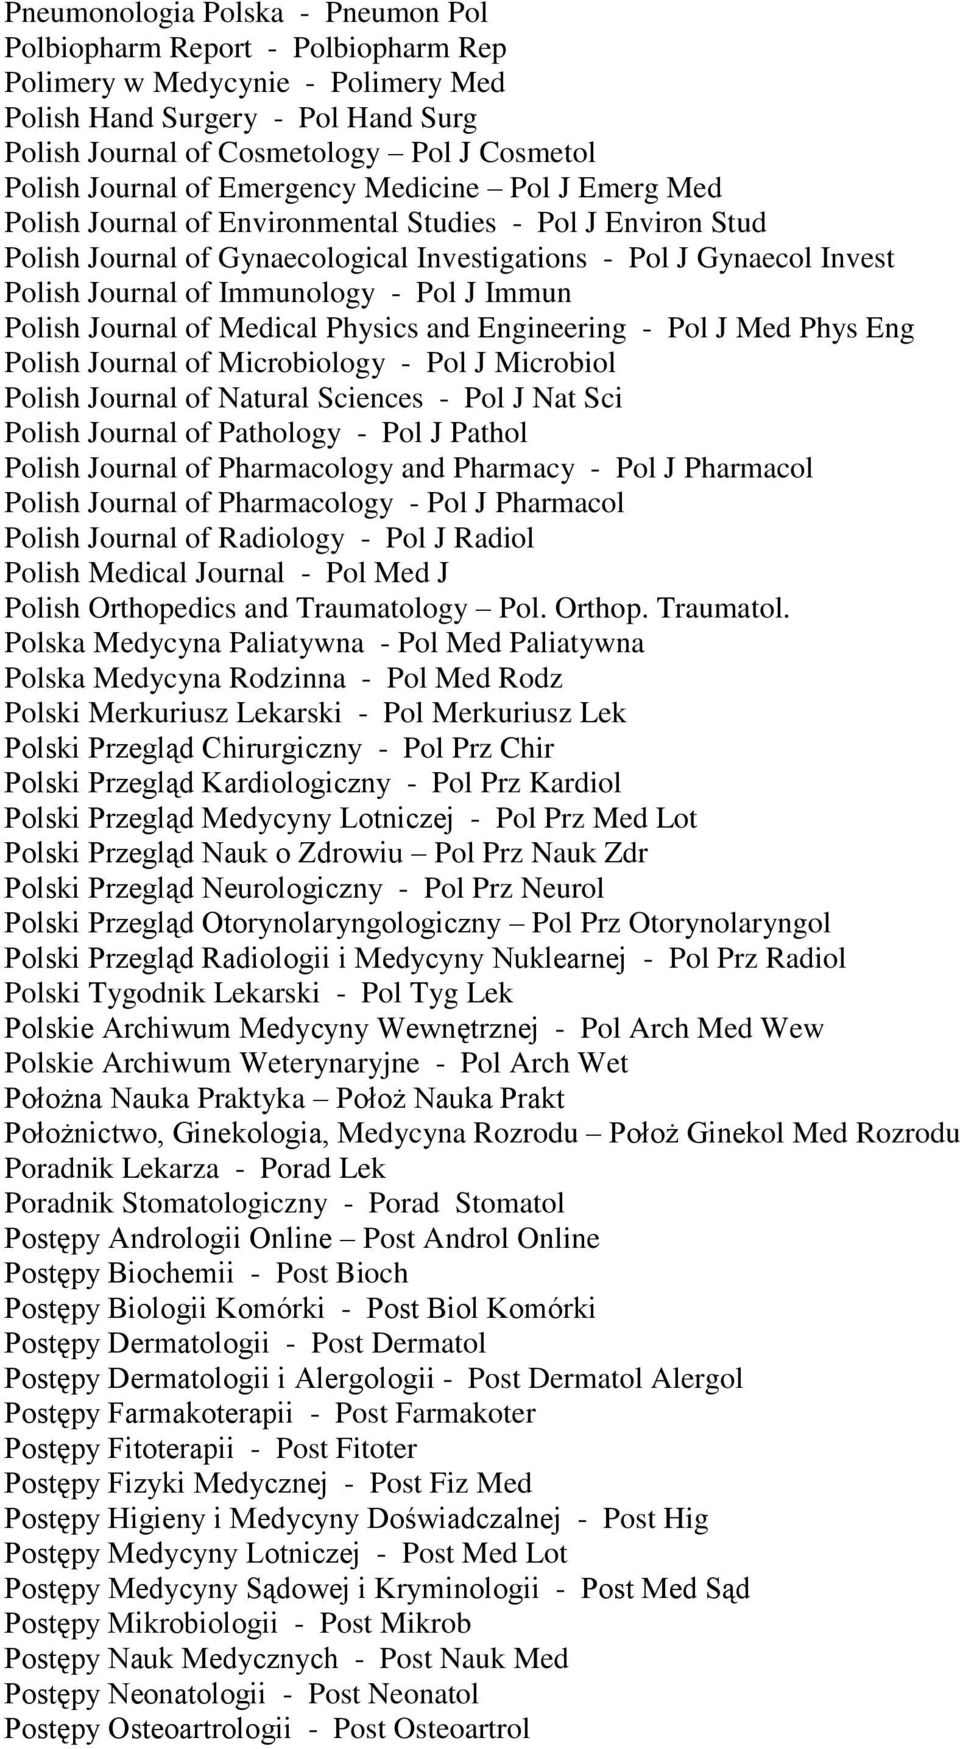 Immunology - Pol J Immun Polish Journal of Medical Physics and Engineering - Pol J Med Phys Eng Polish Journal of Microbiology - Pol J Microbiol Polish Journal of Natural Sciences - Pol J Nat Sci